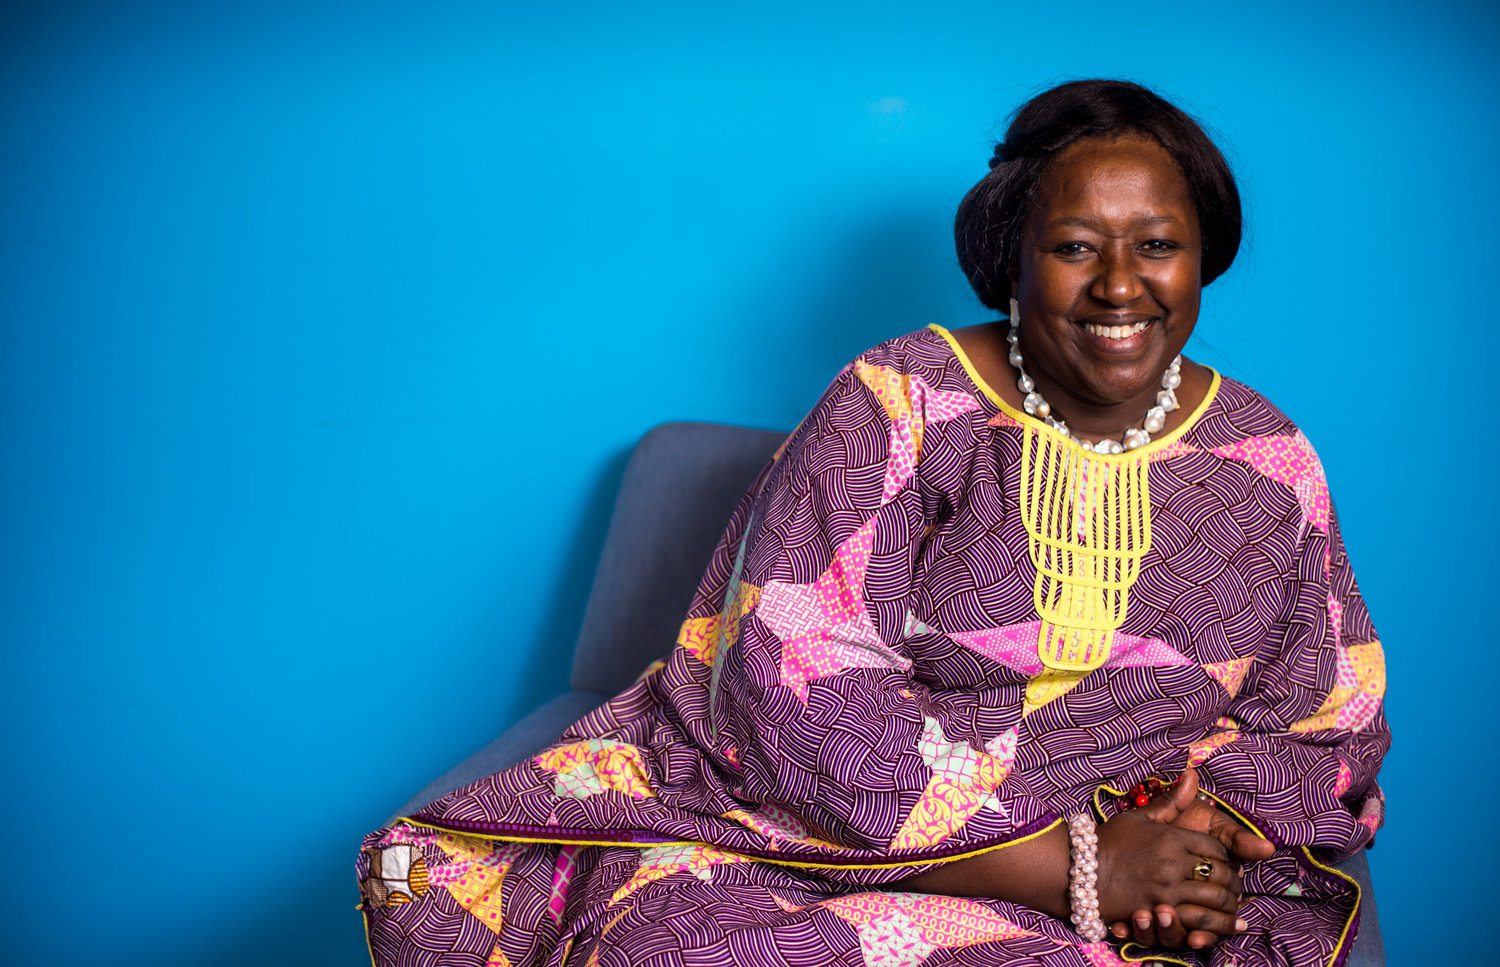 Dr. Agnes Binagwaho, pediatrician and Rwandan Minister of Health from 2011-2016